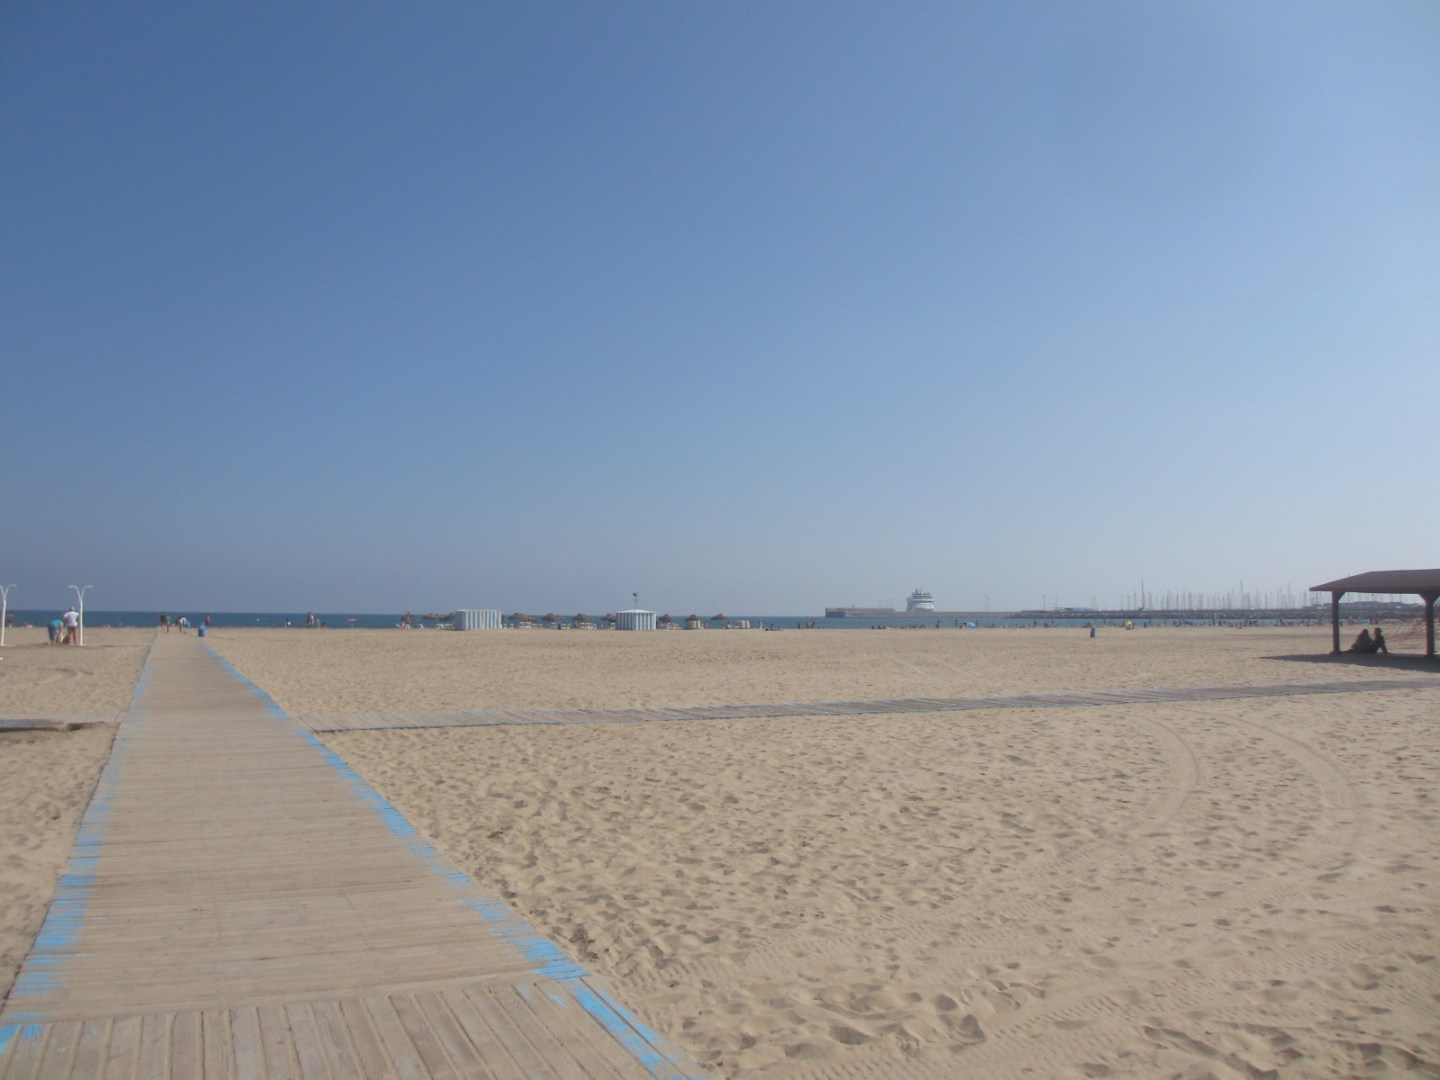 Malvarossa beach in Valencia